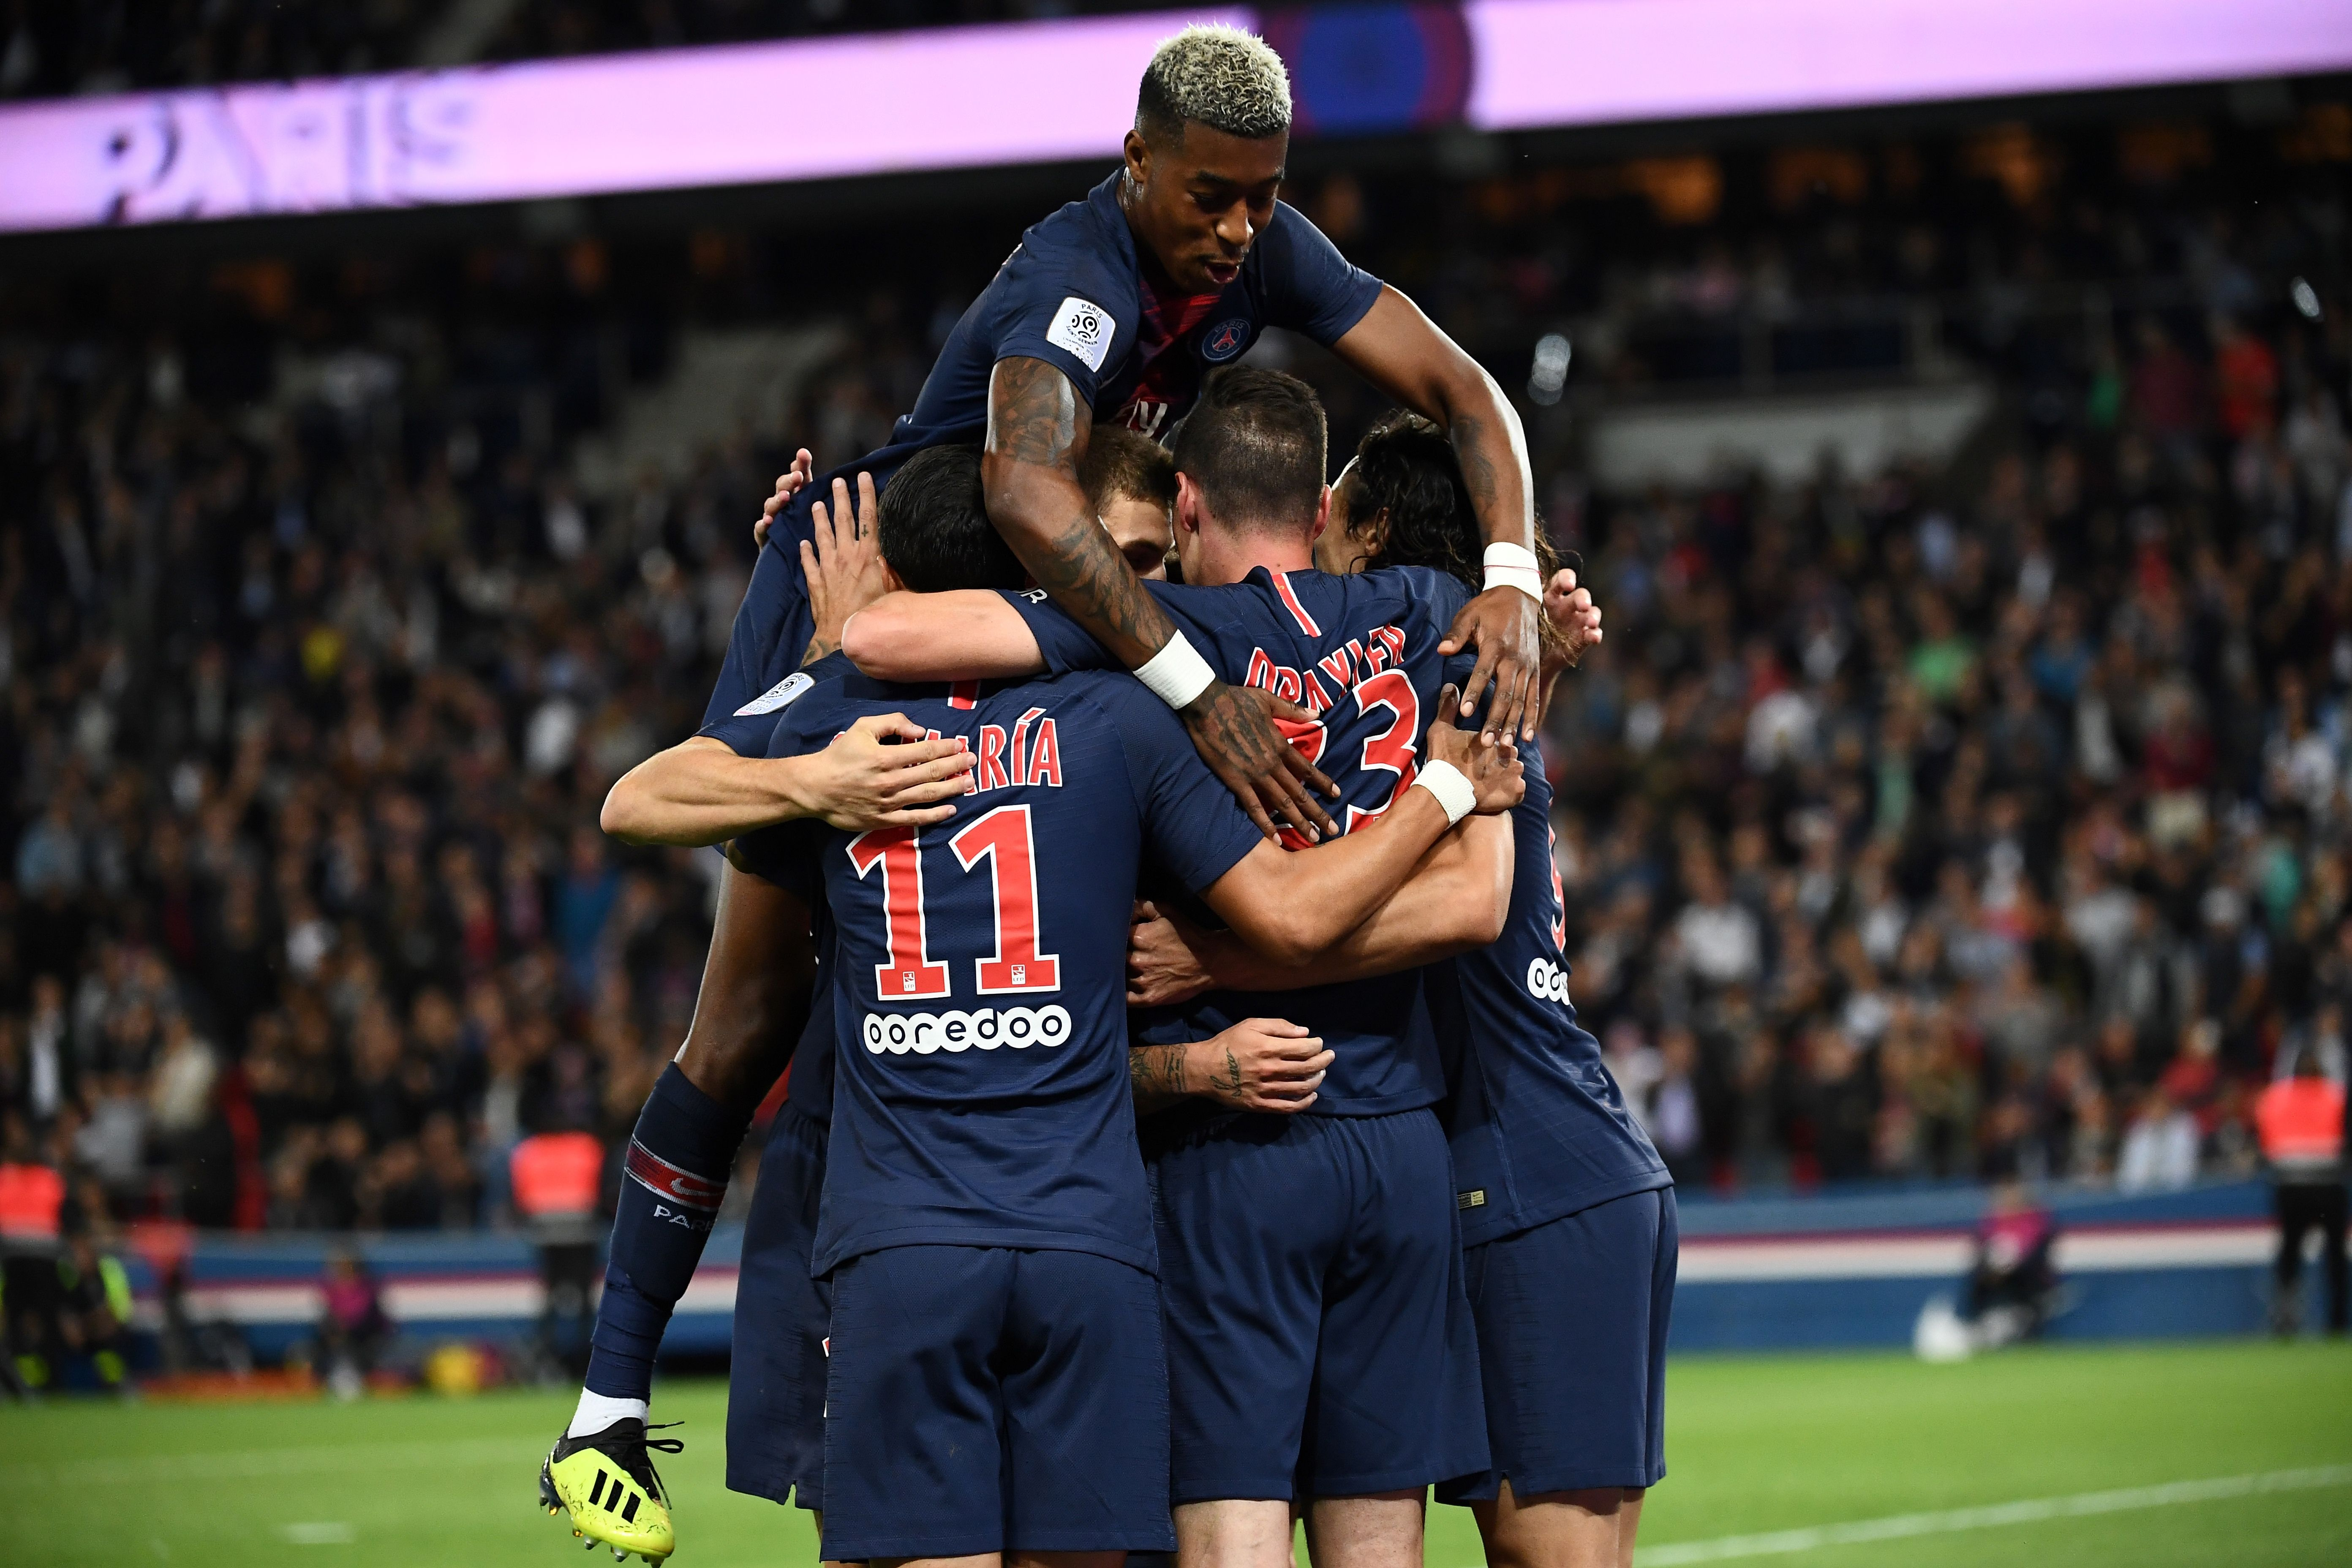 Liverpool v Paris Saint-Germain Betting Special: 25% back on losing bets with SportPesa